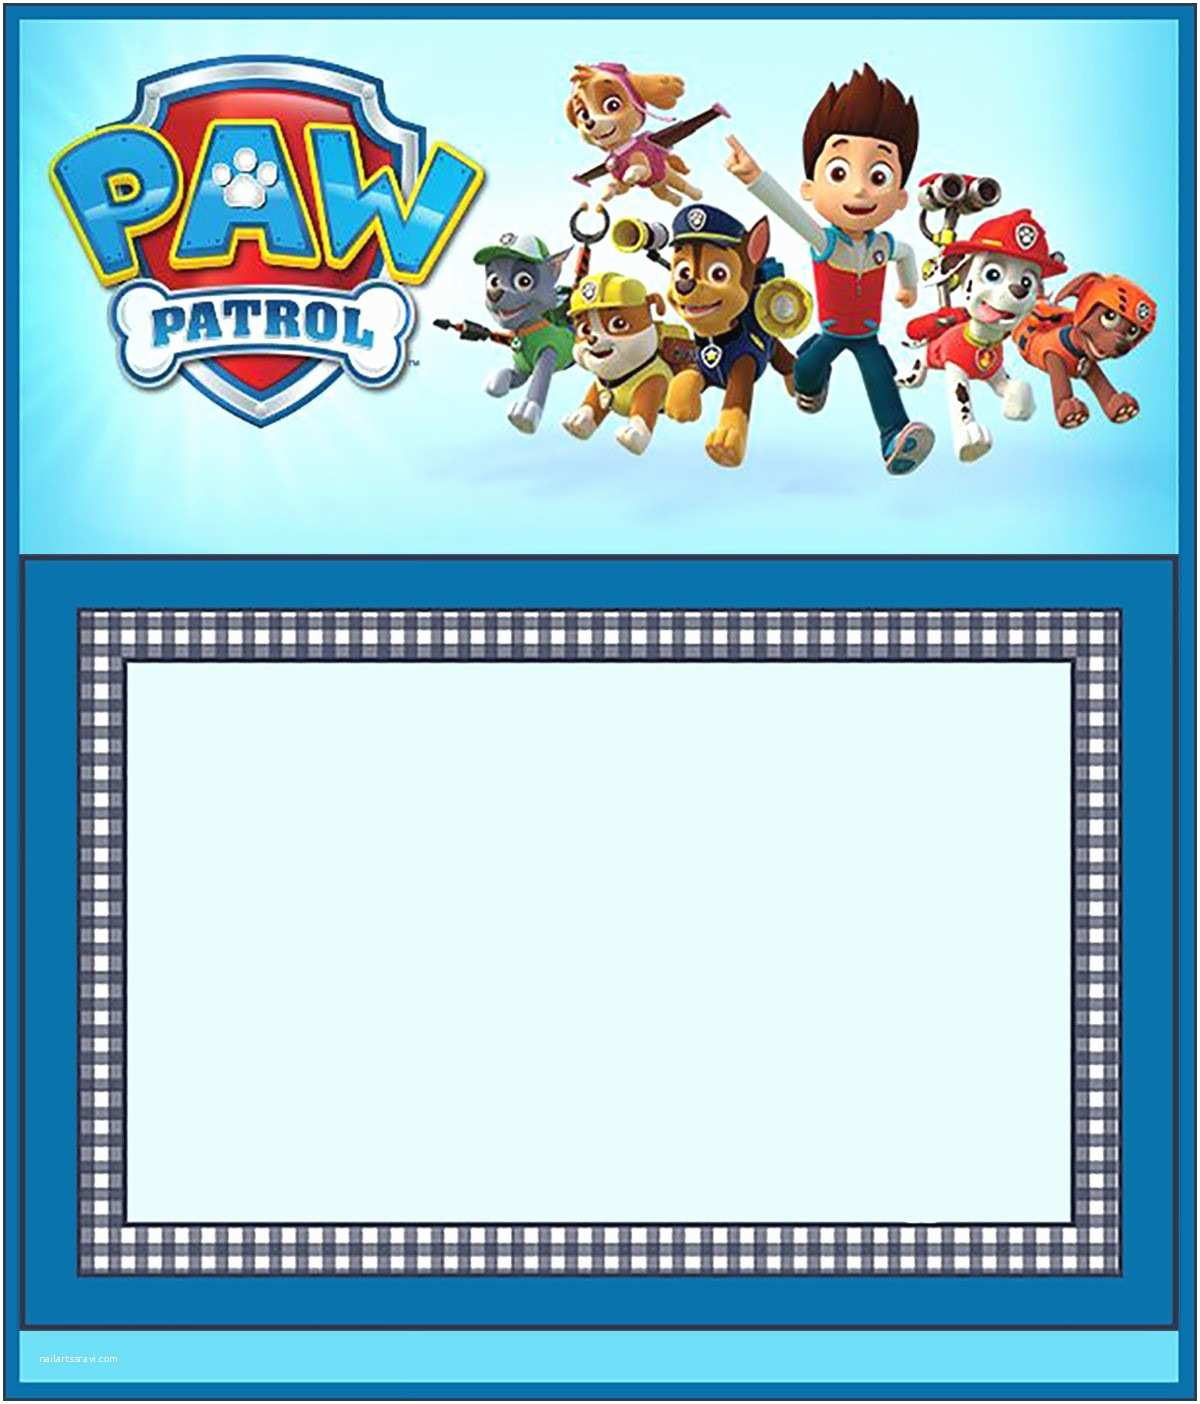 Paw Patrol Birthday Party Invitations Invitation Template Free Songwol 58e92c403f96